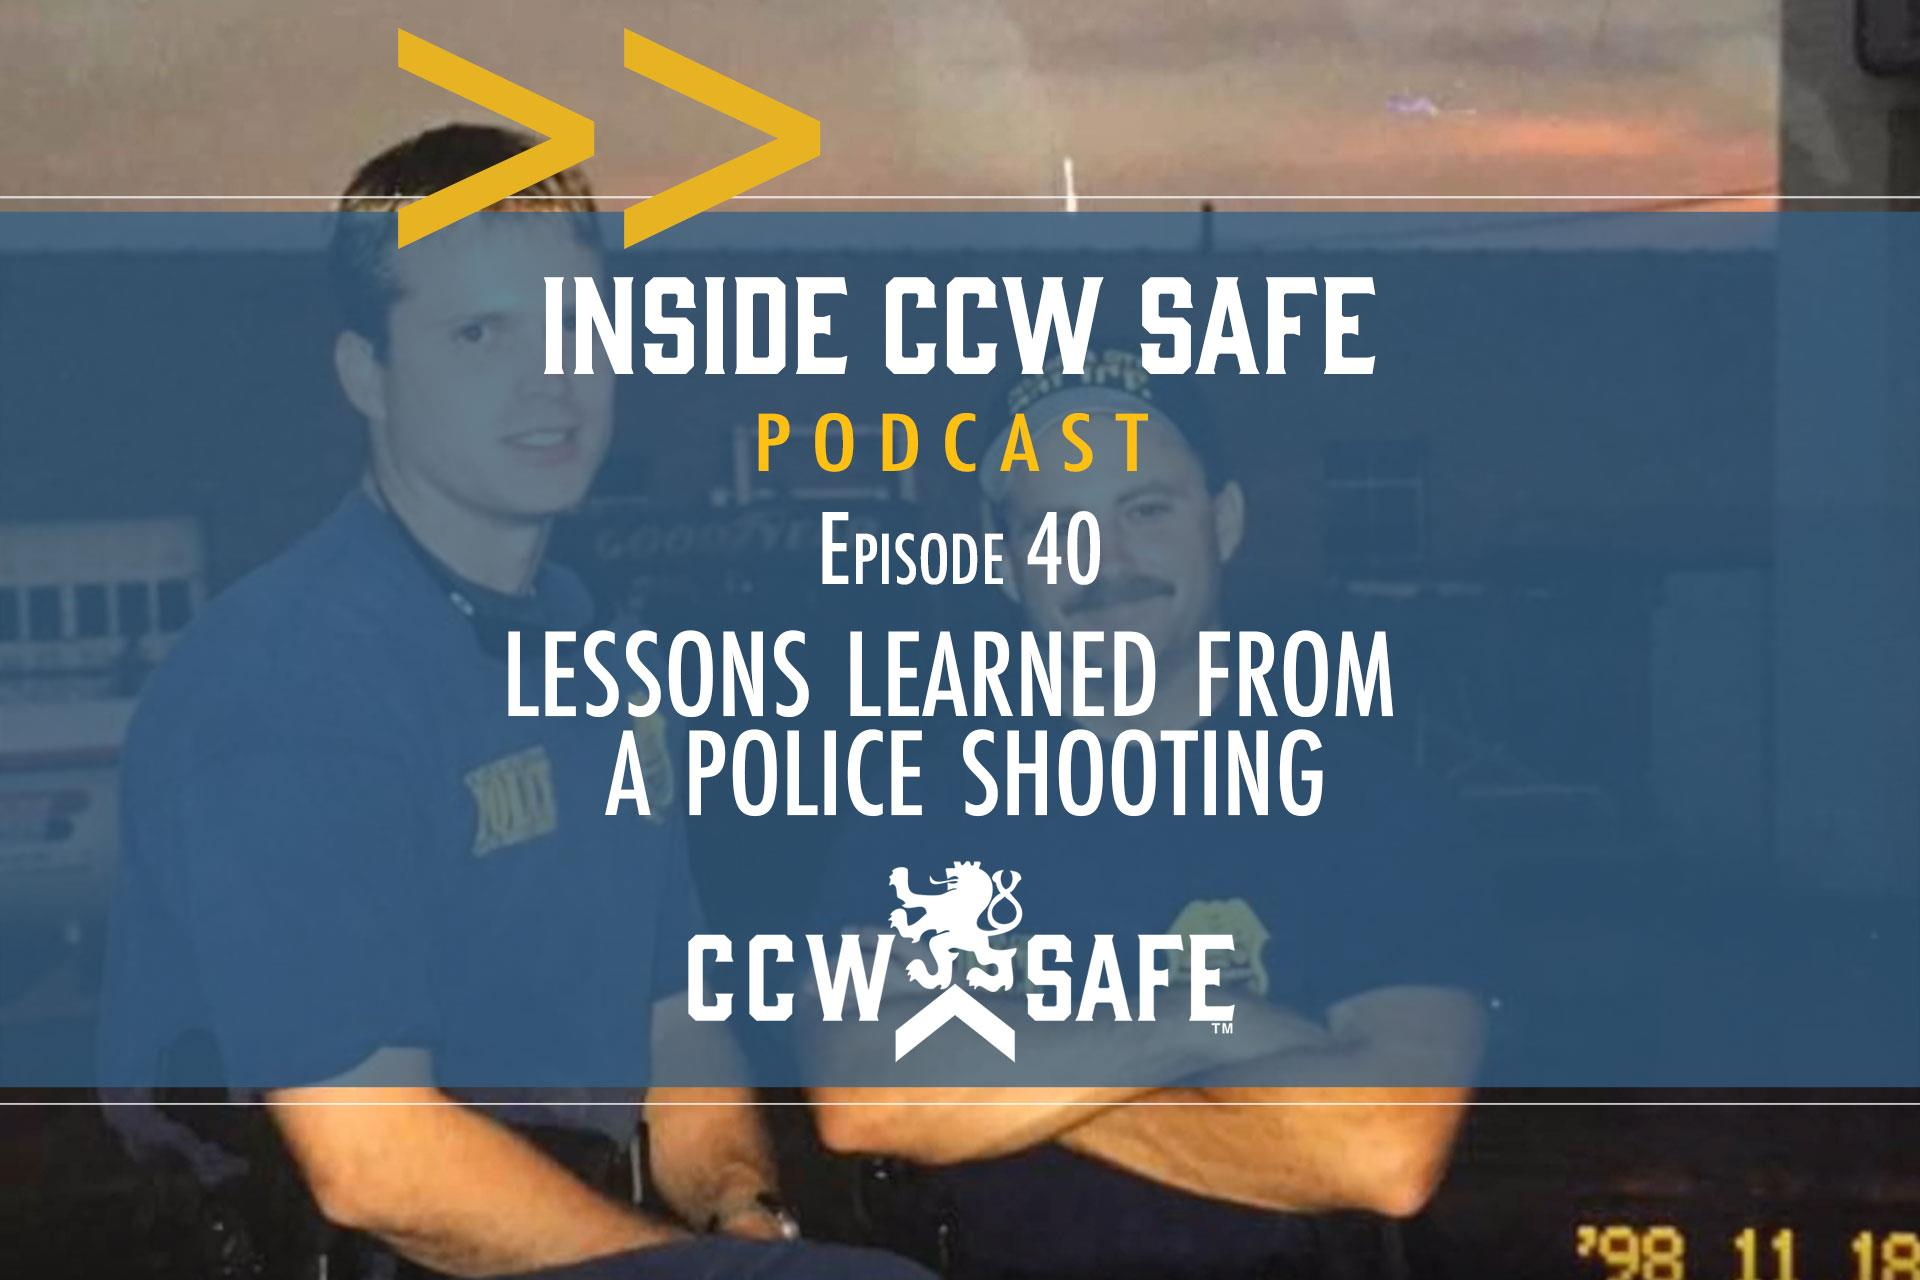 Inside CCW Safe Podcast-Episode 40: Lessons Learned From A Police Shooting